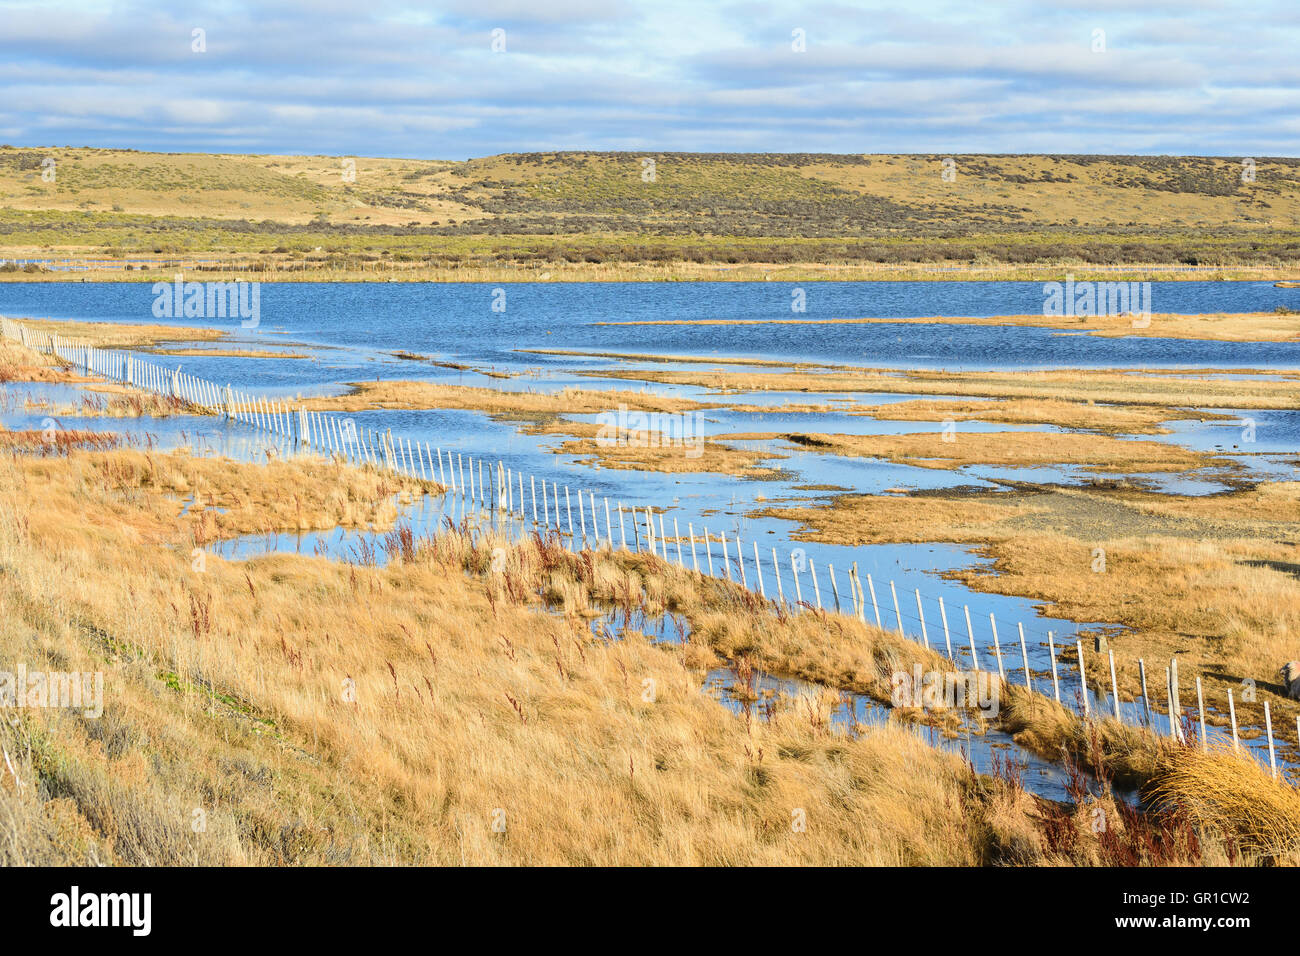 Lake and farm in the Patagoia - Stock Image